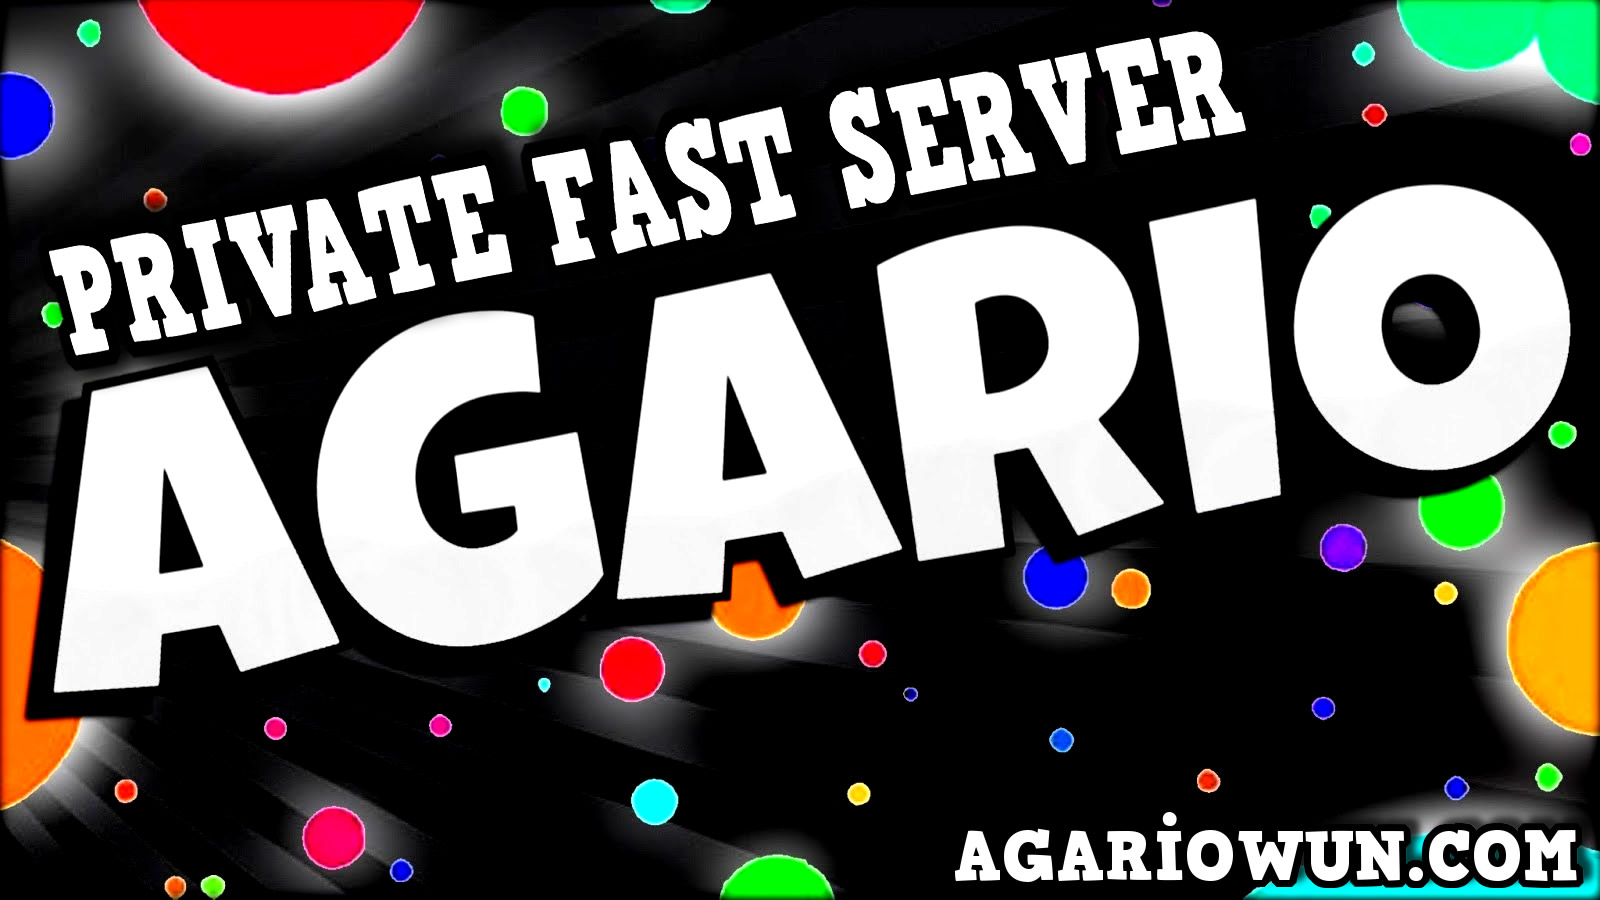 Agar.io Private Fast Server! Hız ve Eglence Bir Arada